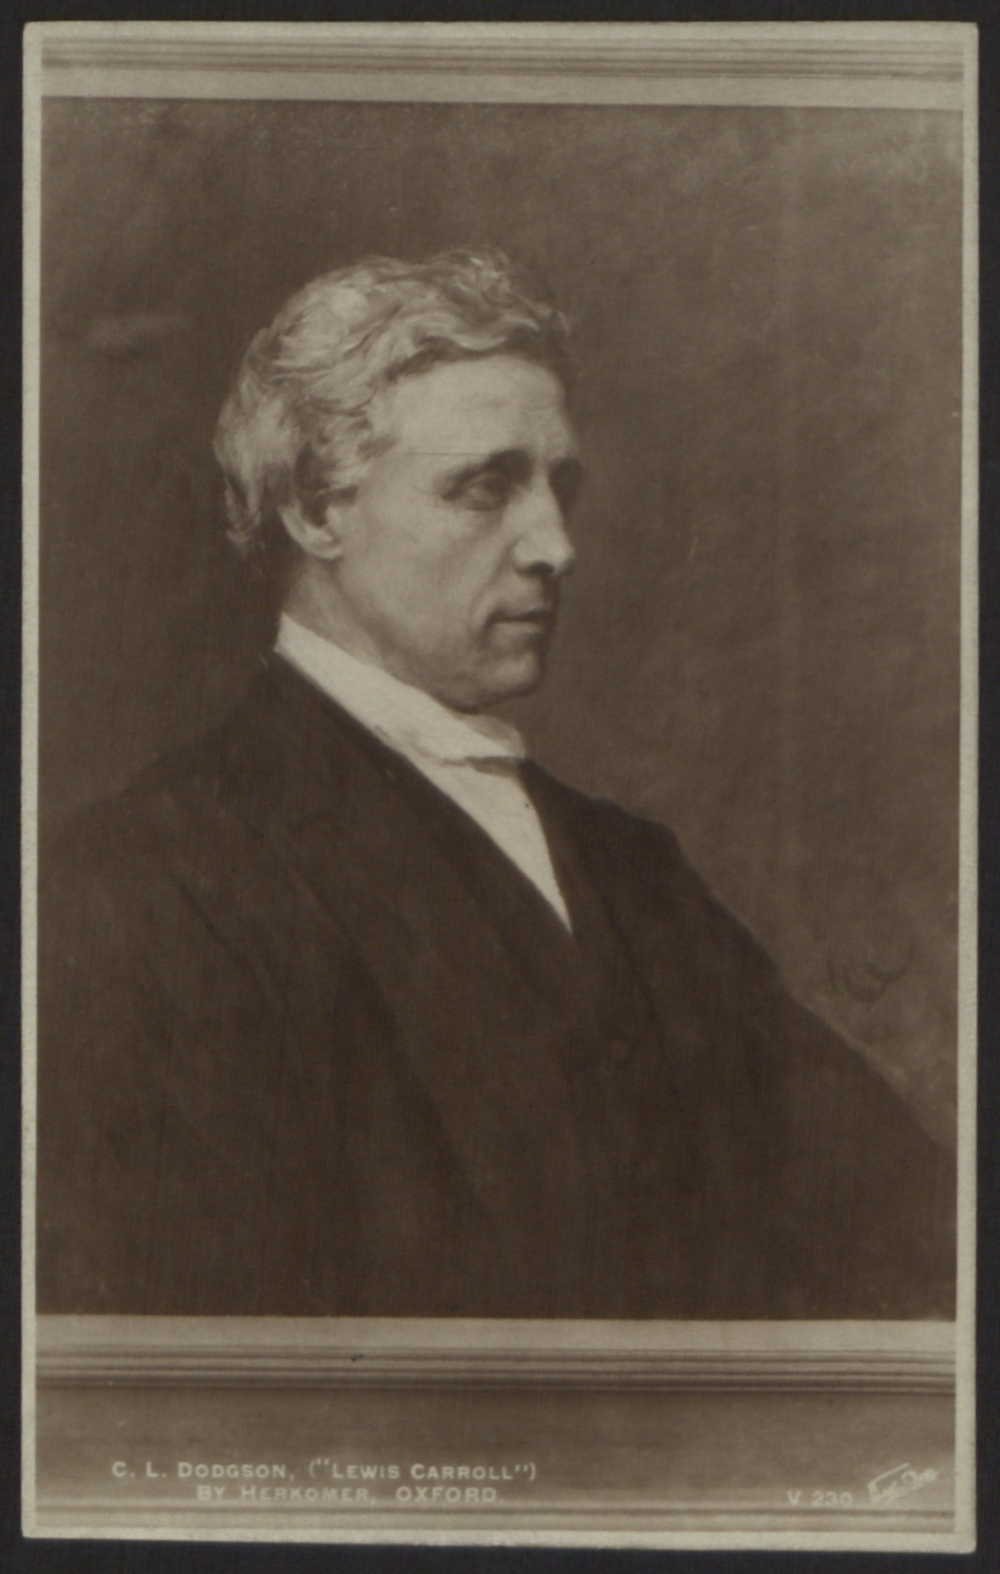 preview image for Print, Postcard of C.L. Dodgson (Lewis Carroll), Photograph of a Painting, by Herkomer, Oxford, Published by Walter Scott, Bradford, 20th Century